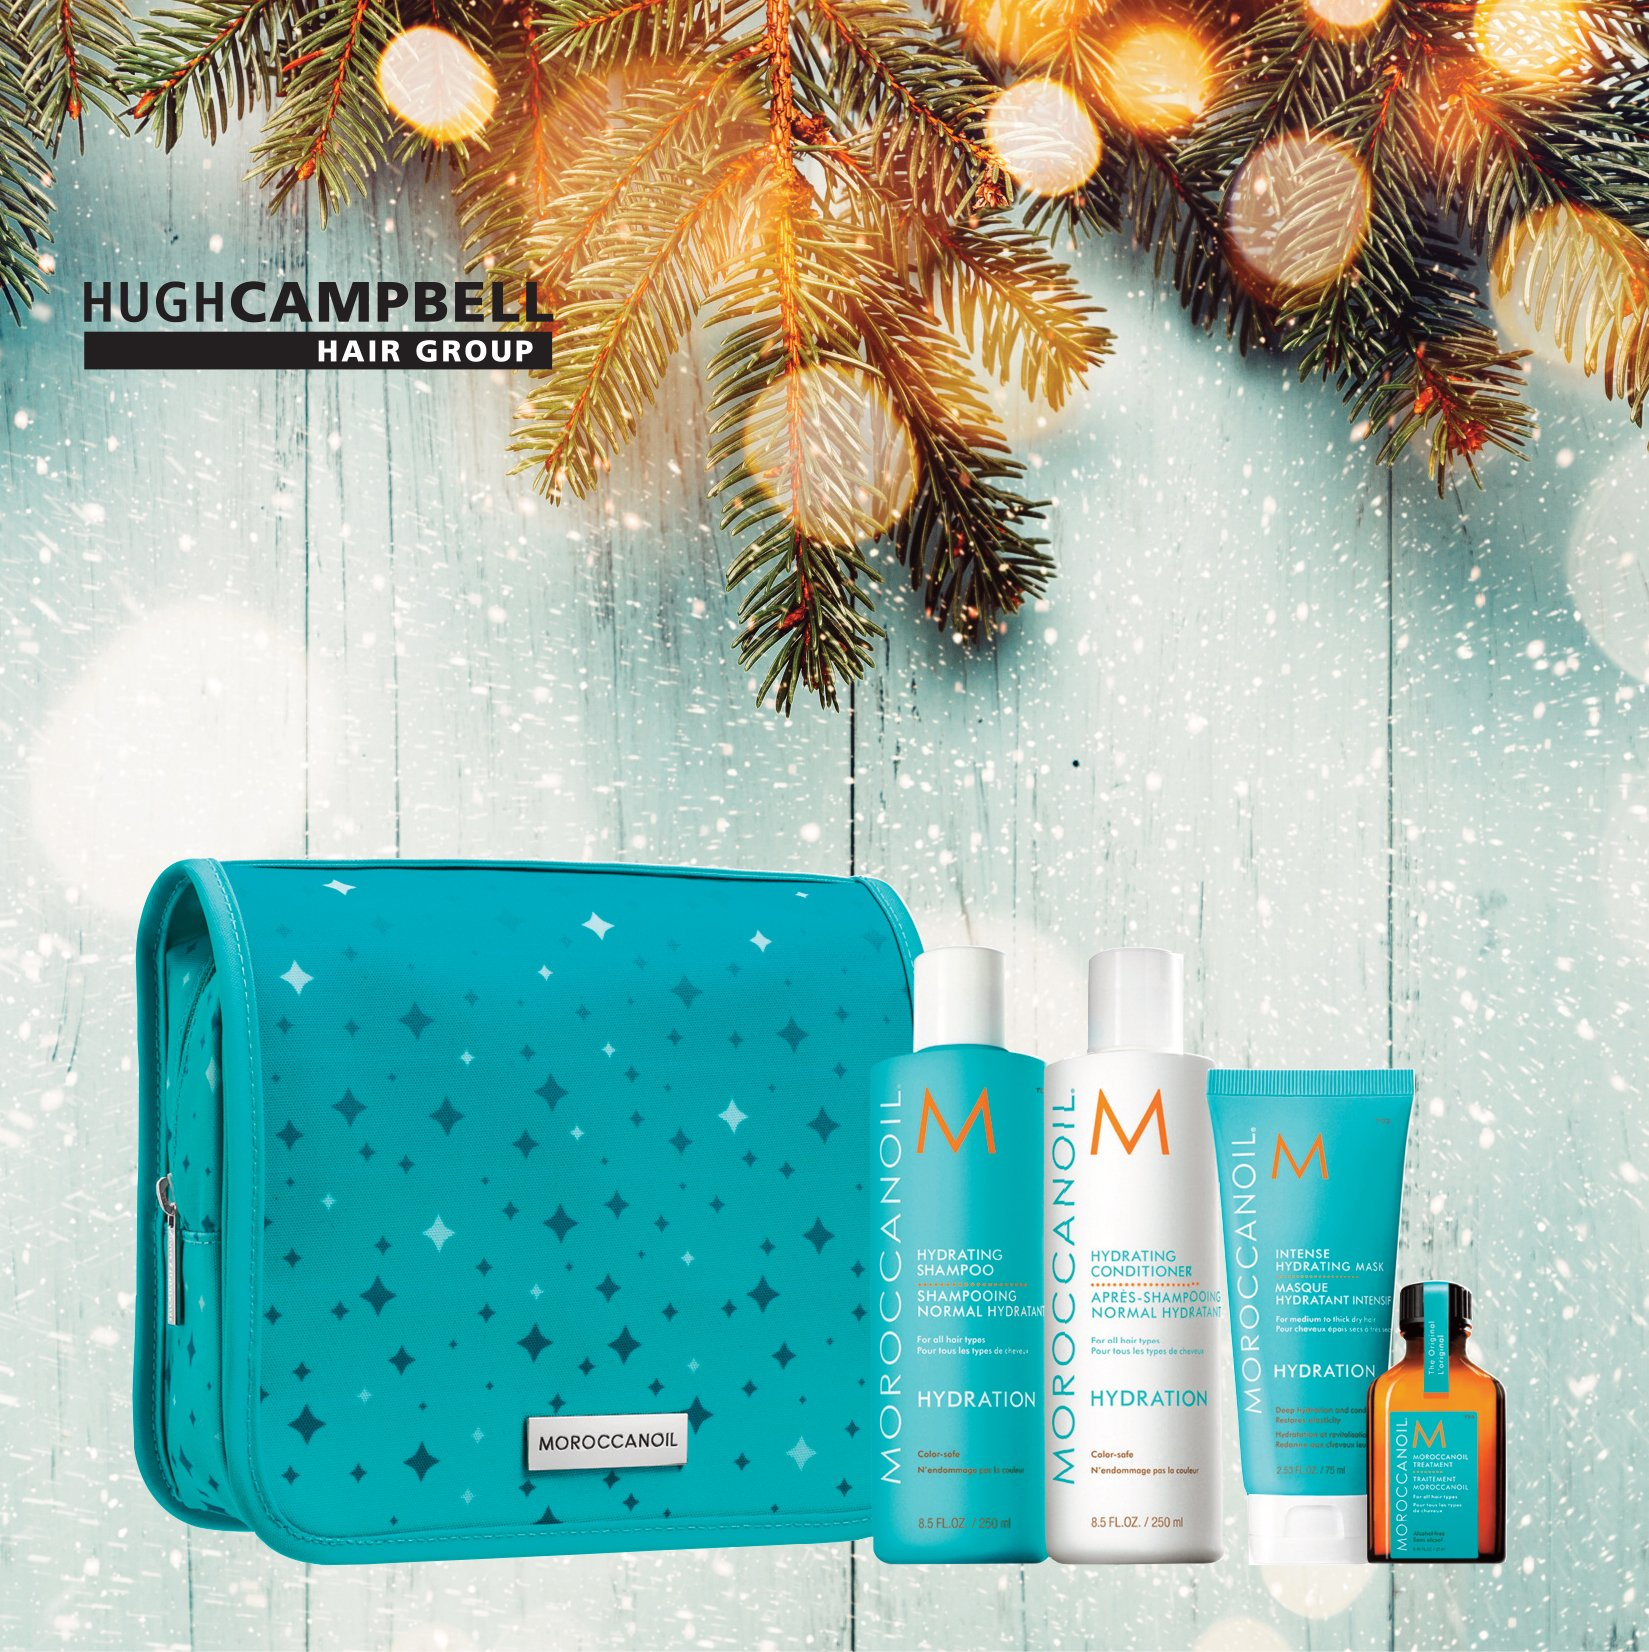 Moroccanoil Christmas Gift Sets 2020 Hugh Campbell online shop